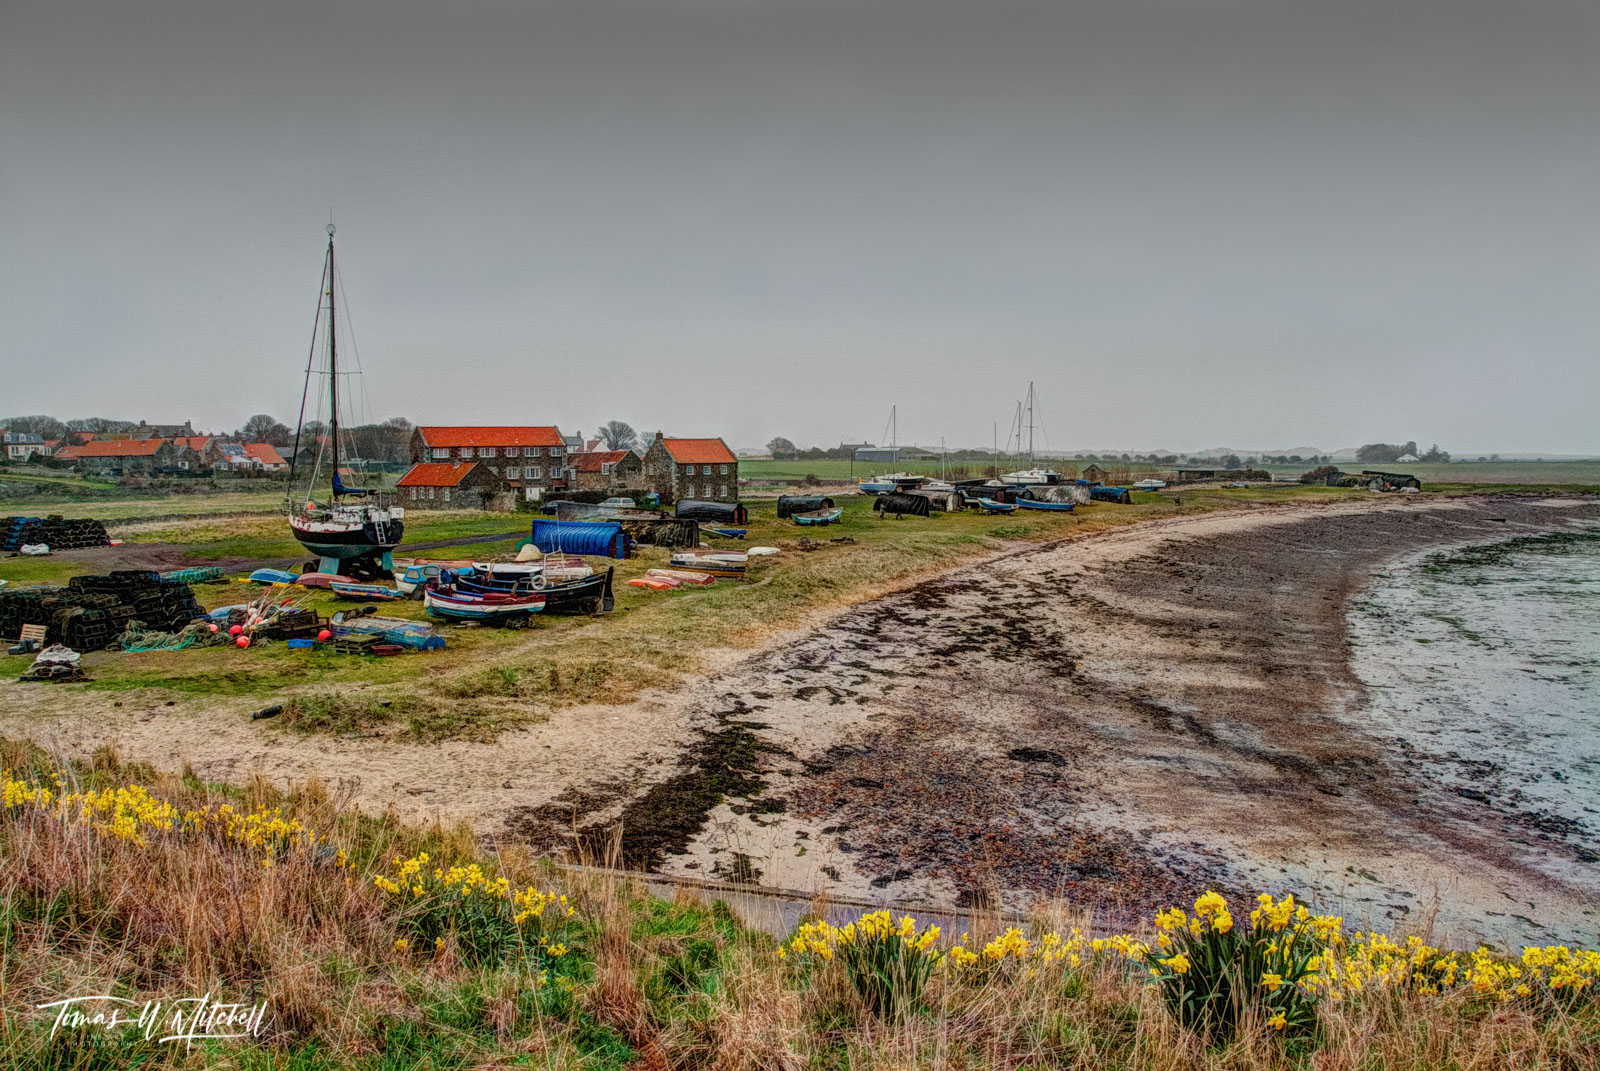 limited edition, museum grade, fine art, prints, fishing village, lindisfarne, england, holy island, history, viking, britain, monastery, photograph, beach, boats, buildings, daffodils, yellow, englis, photo